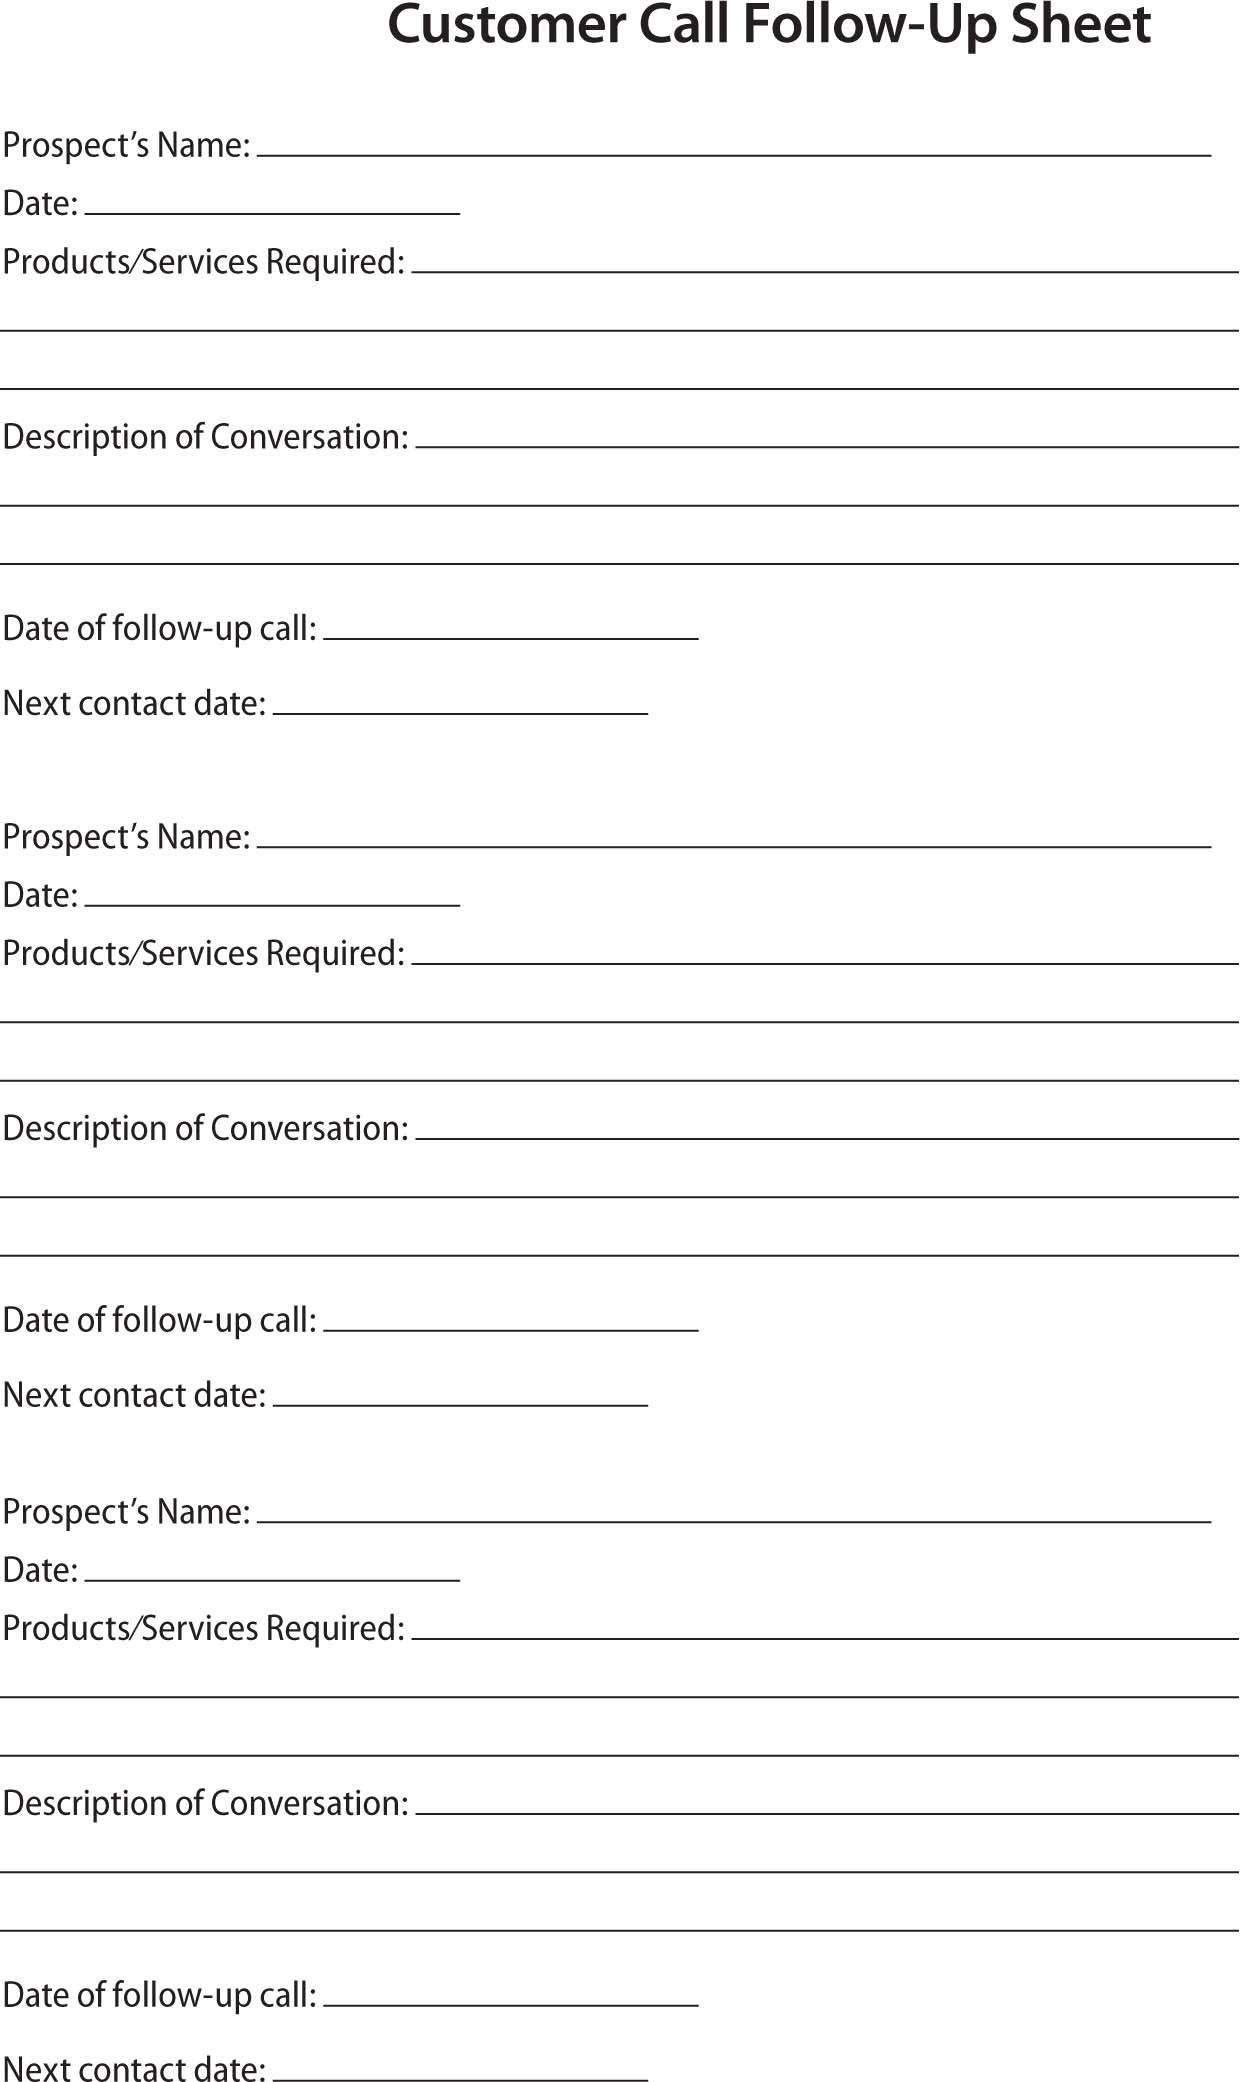 Full Size of Business Partnership Agreement Template Small Payroll 4 Sided Follow Up Sheet